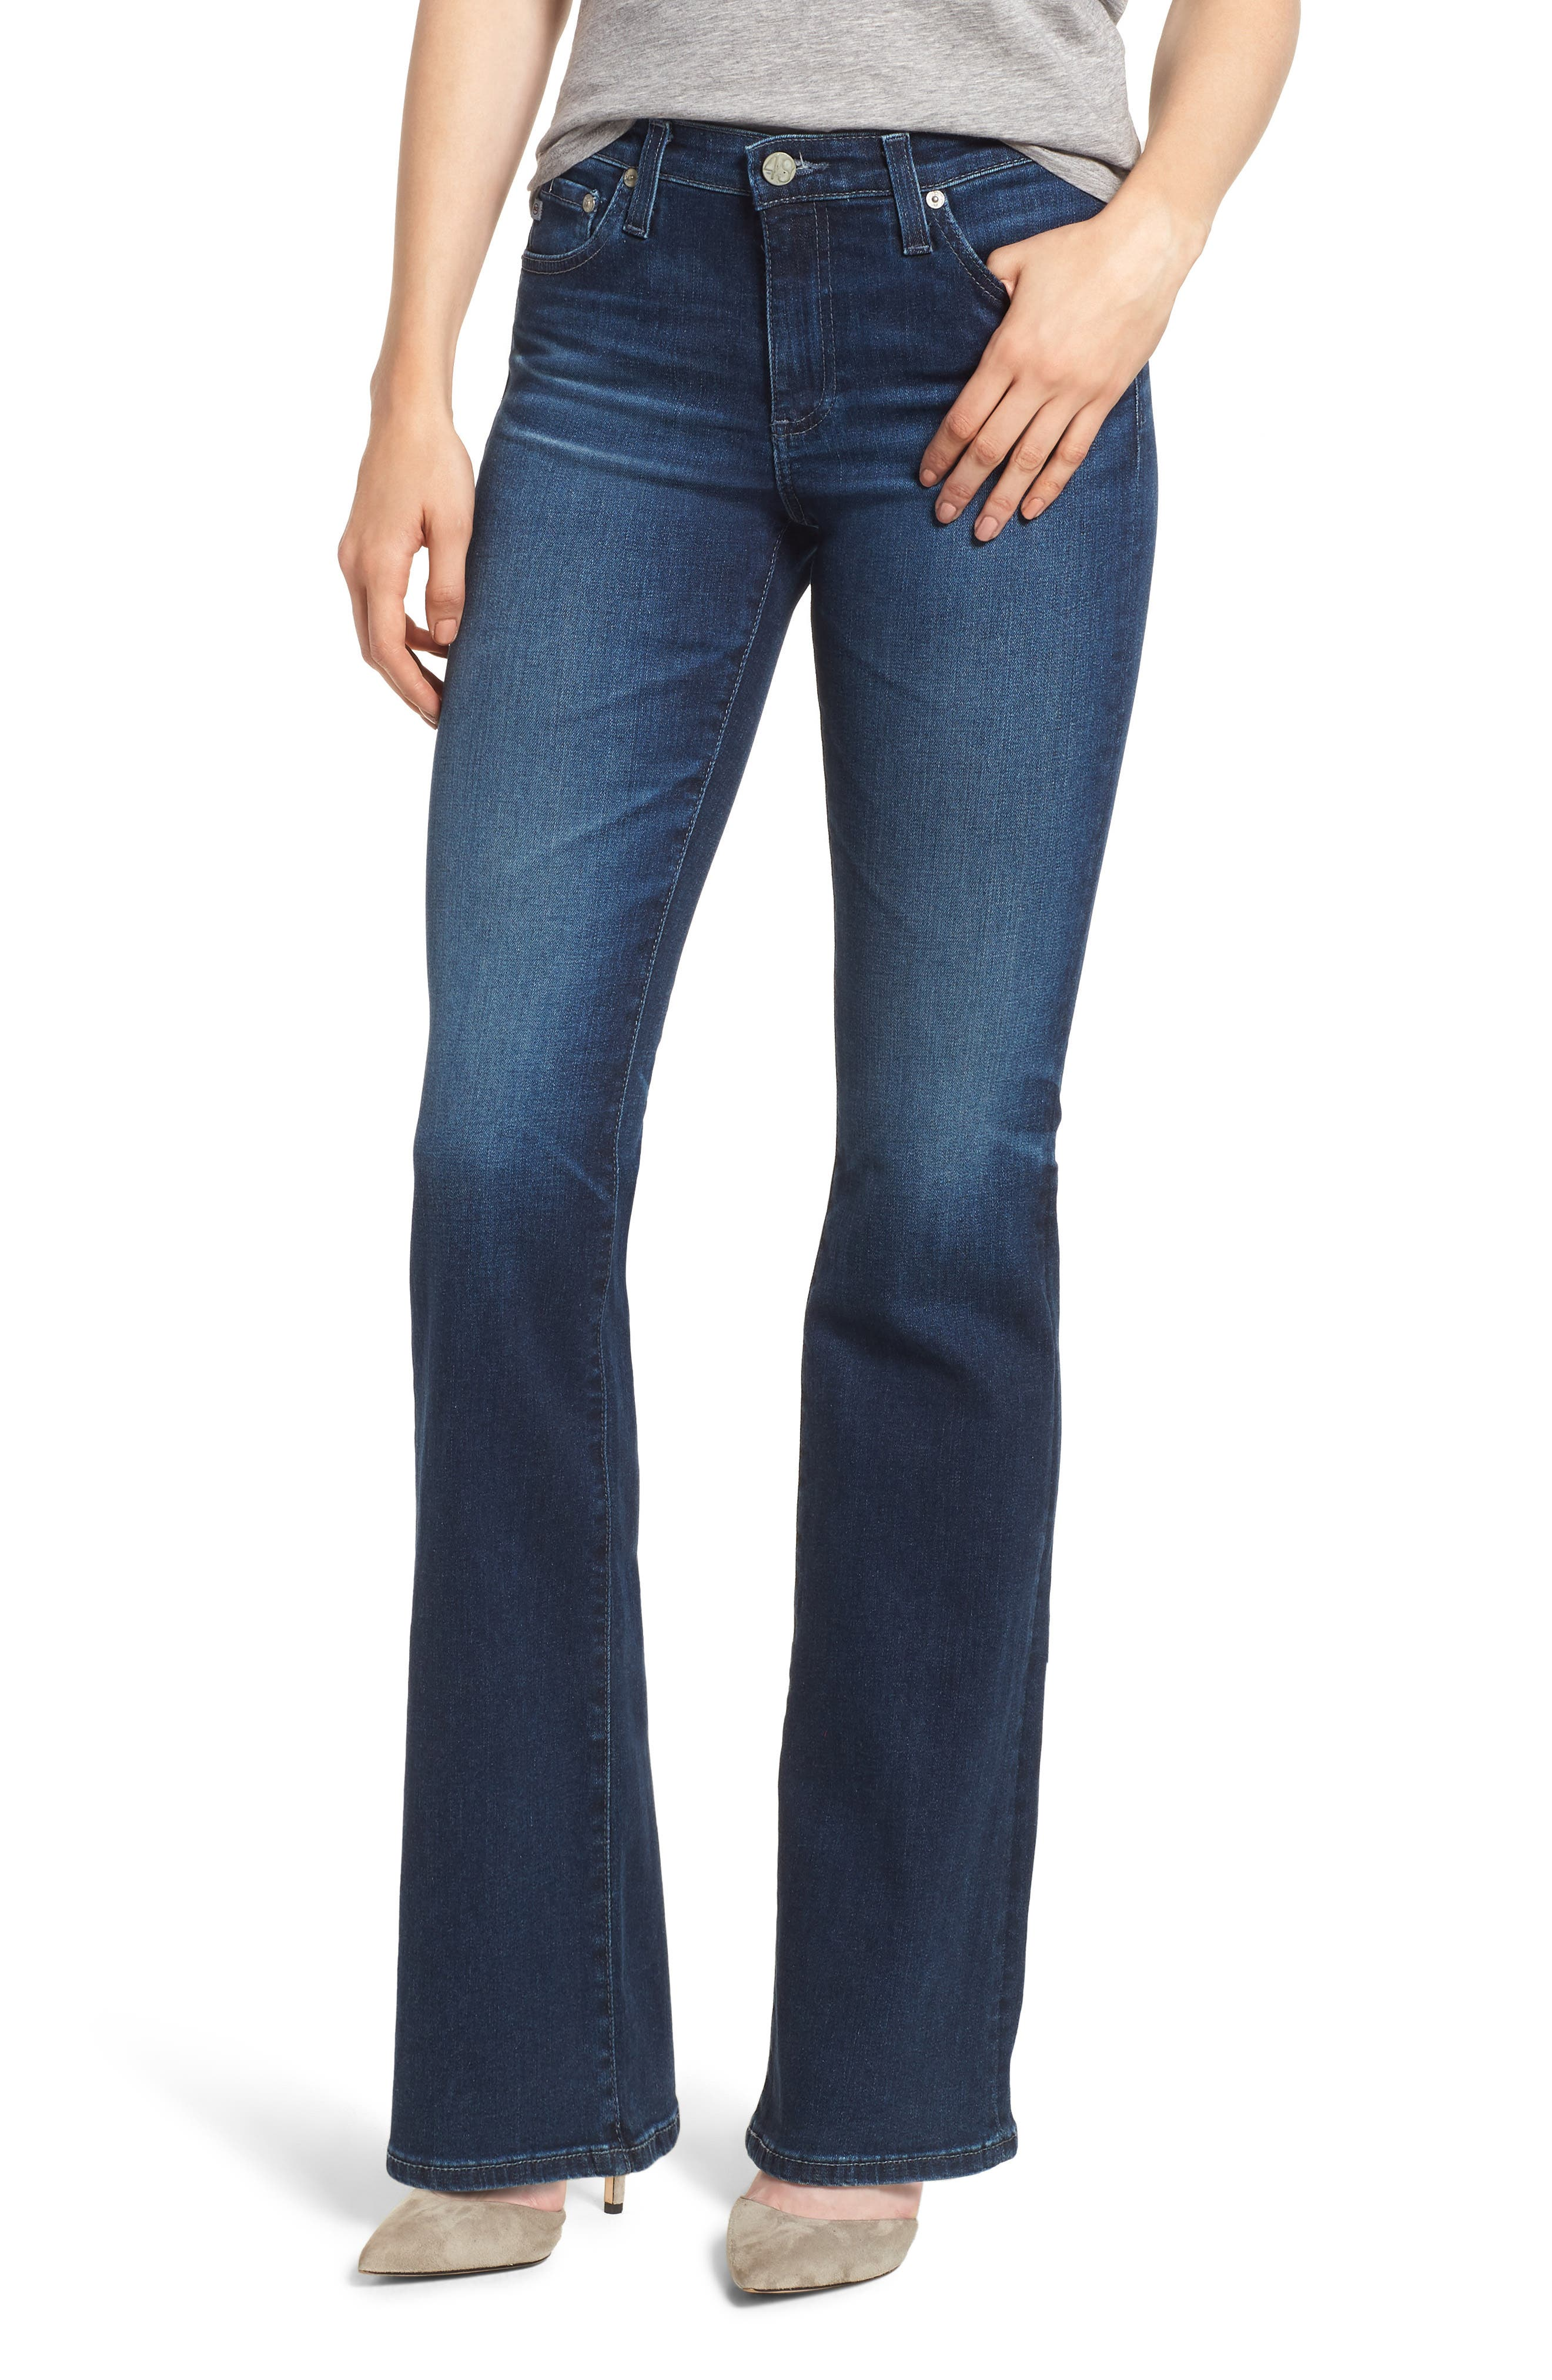 Angel Flare Jeans,                             Main thumbnail 1, color,                             04 YEARS DEEP WILLOWS